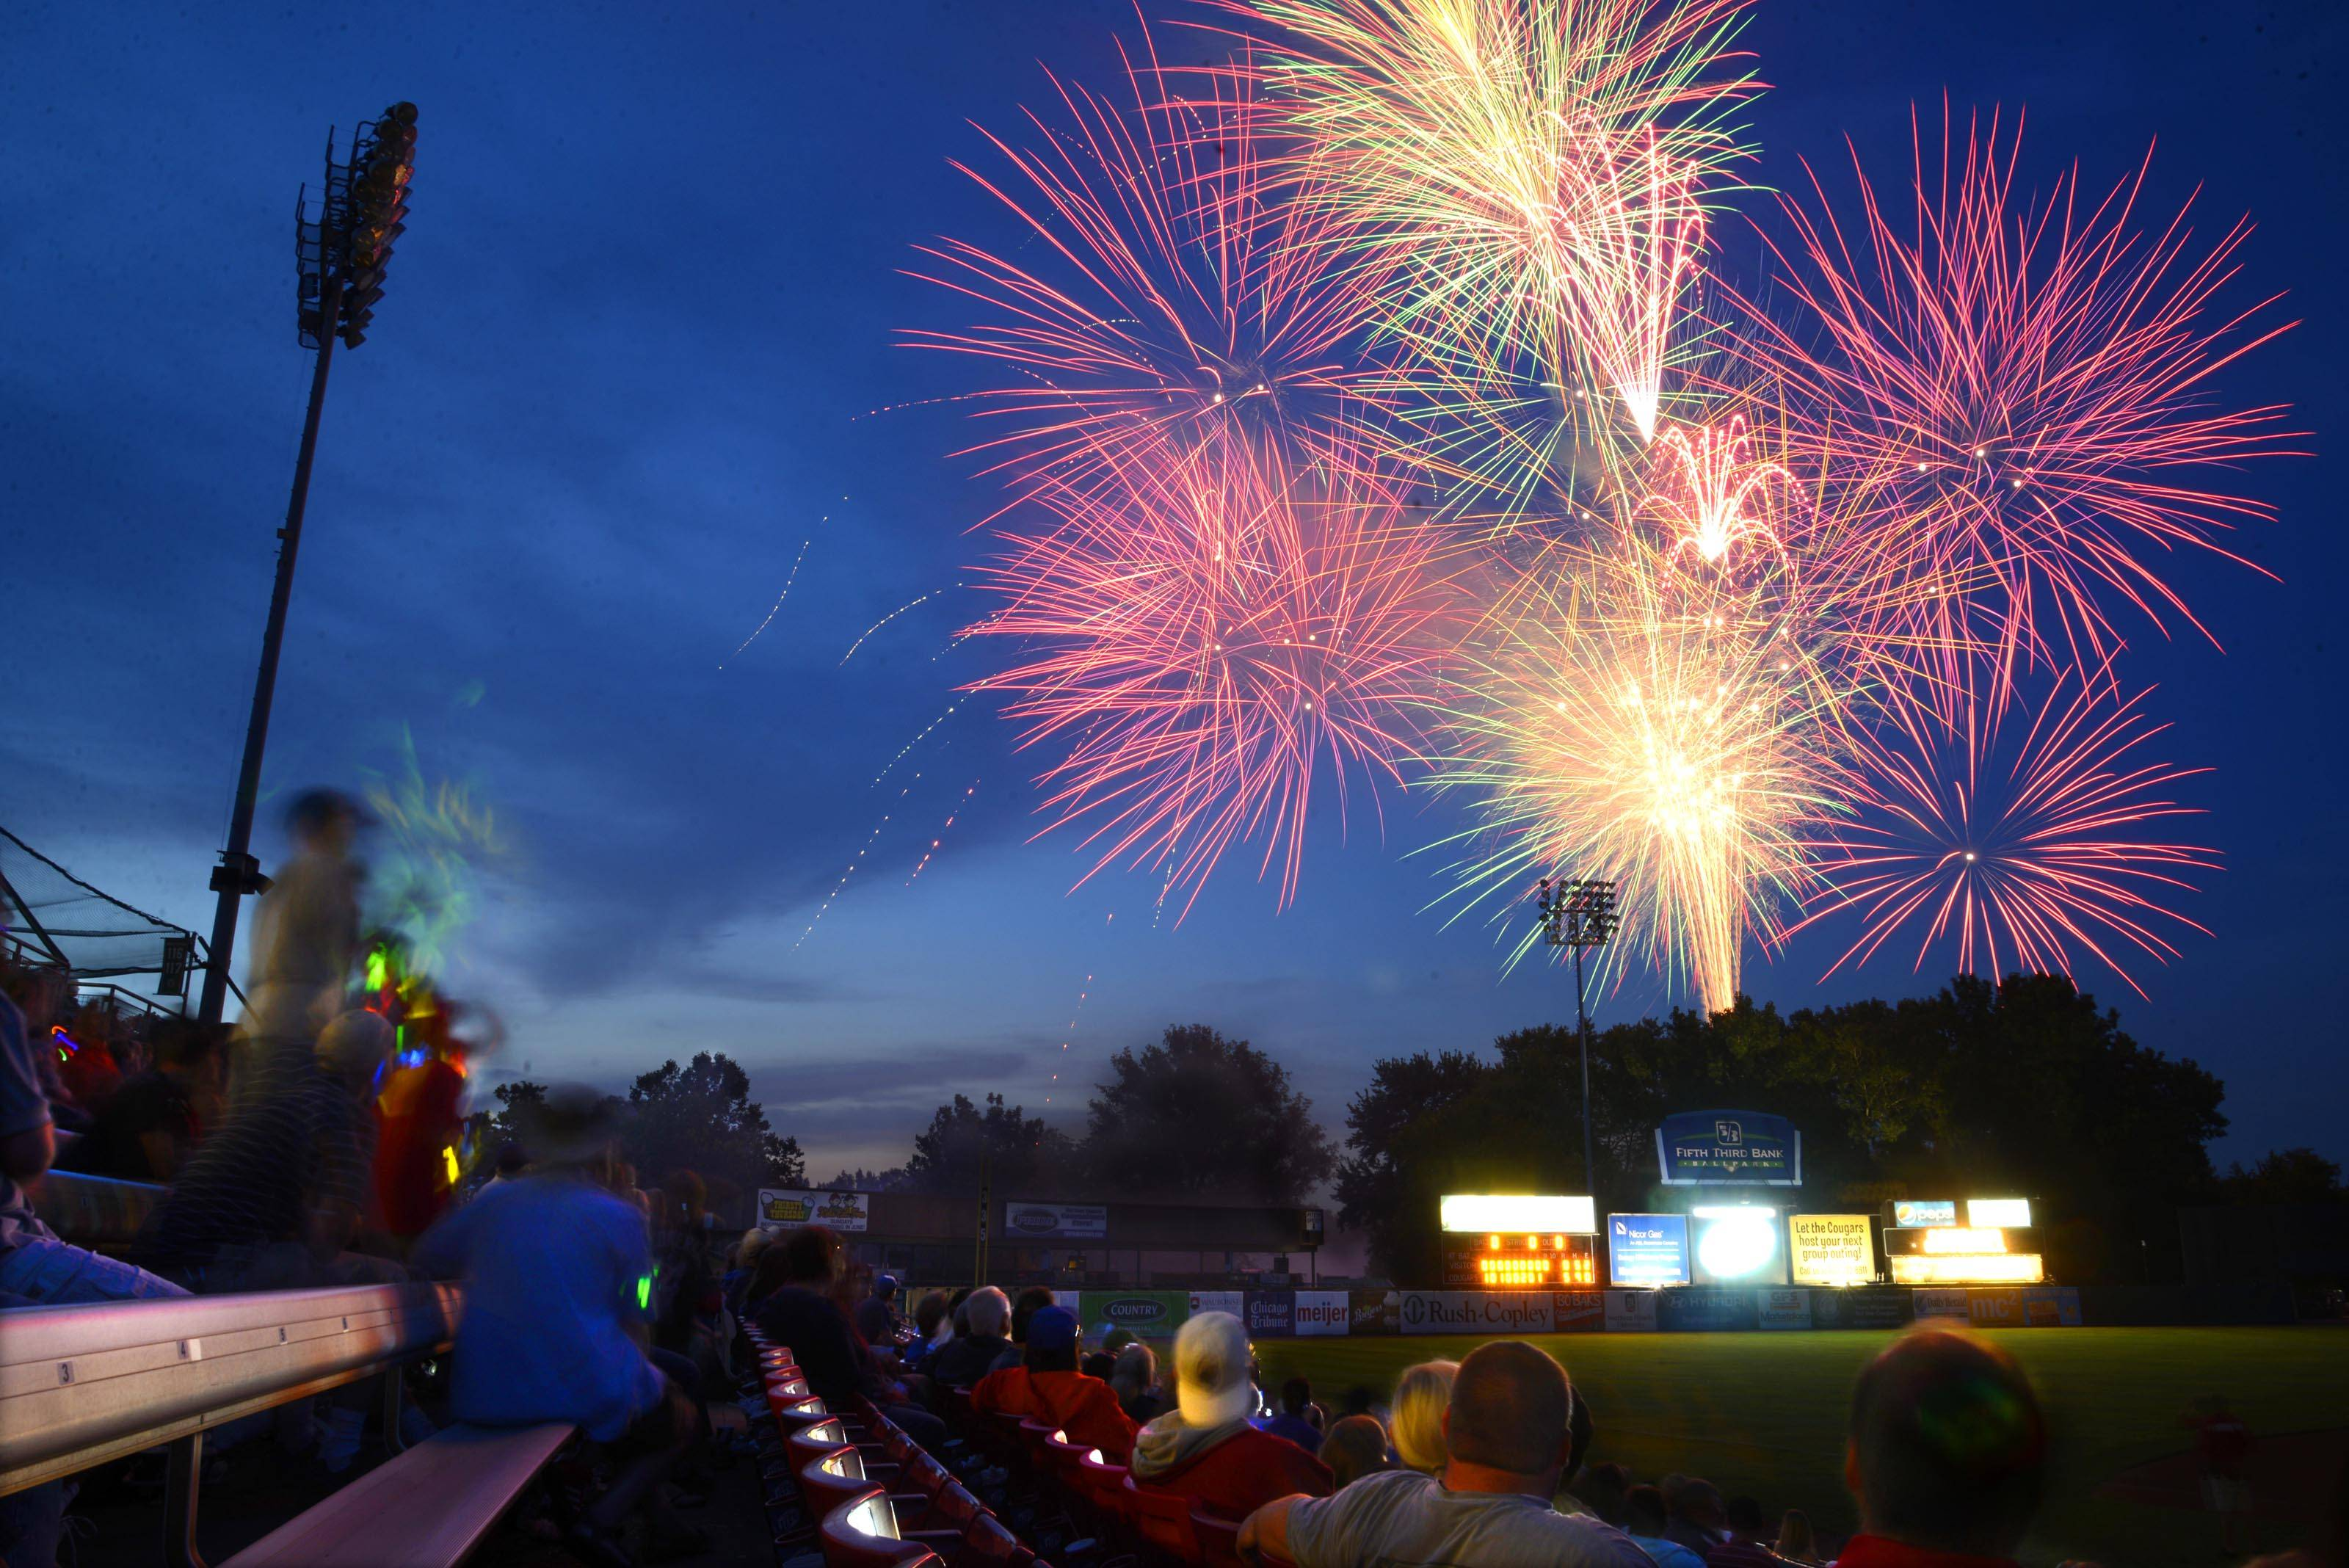 Fireworks light up the sky over Fifth Third Ballpark after a recent Kane County Cougars game in Geneva.